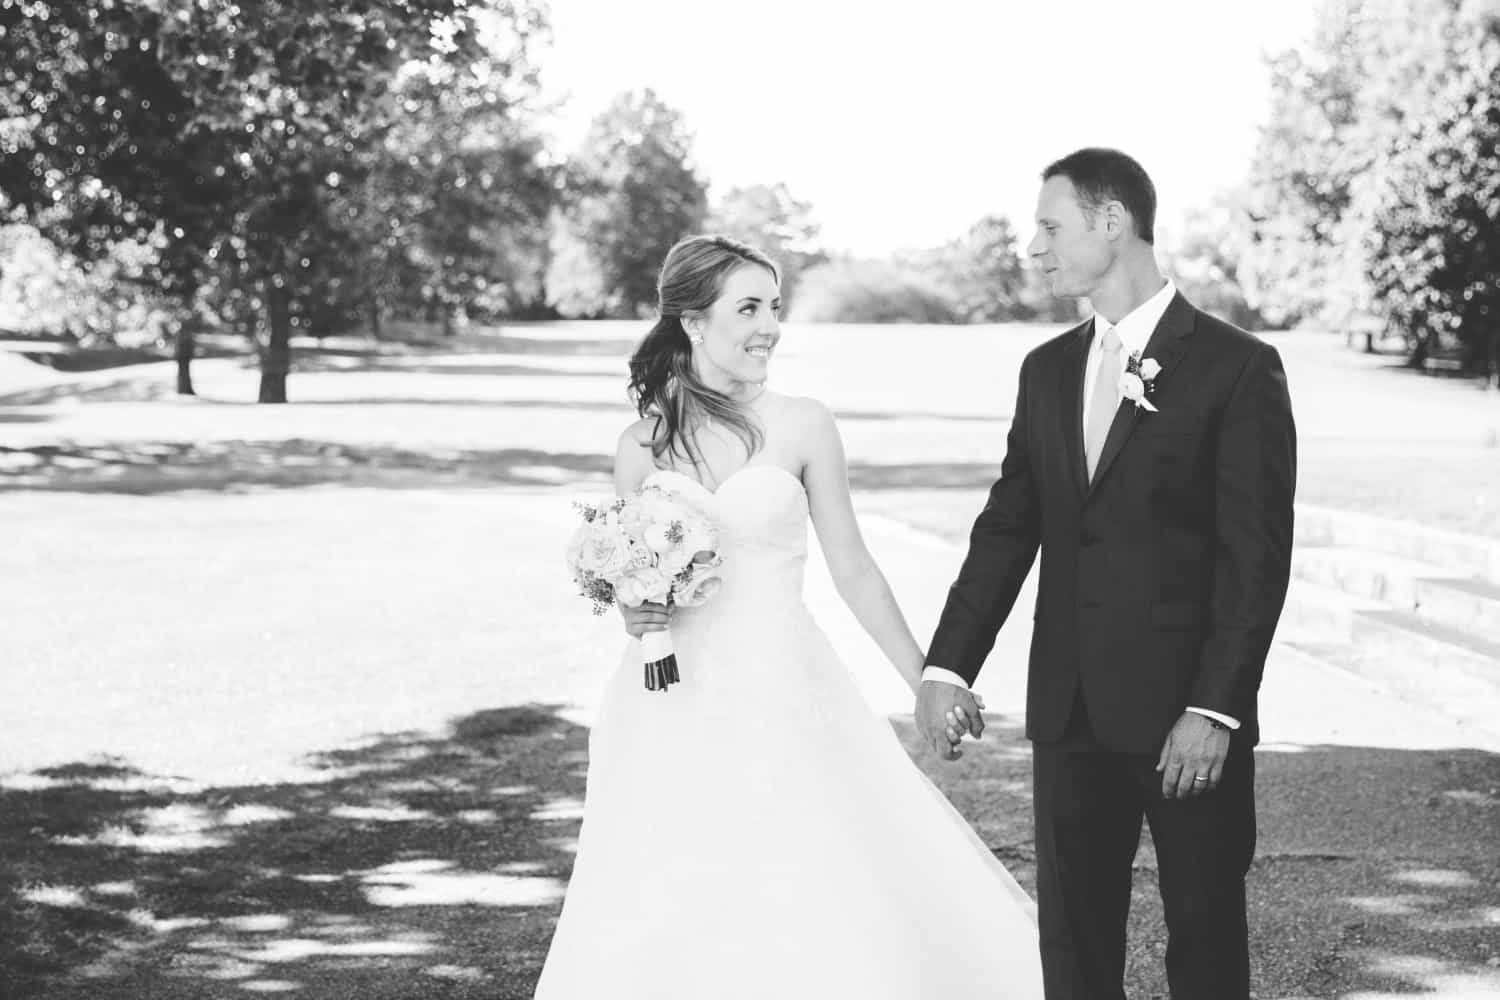 RachelEvelynPhotography_WeddingPhotographer31